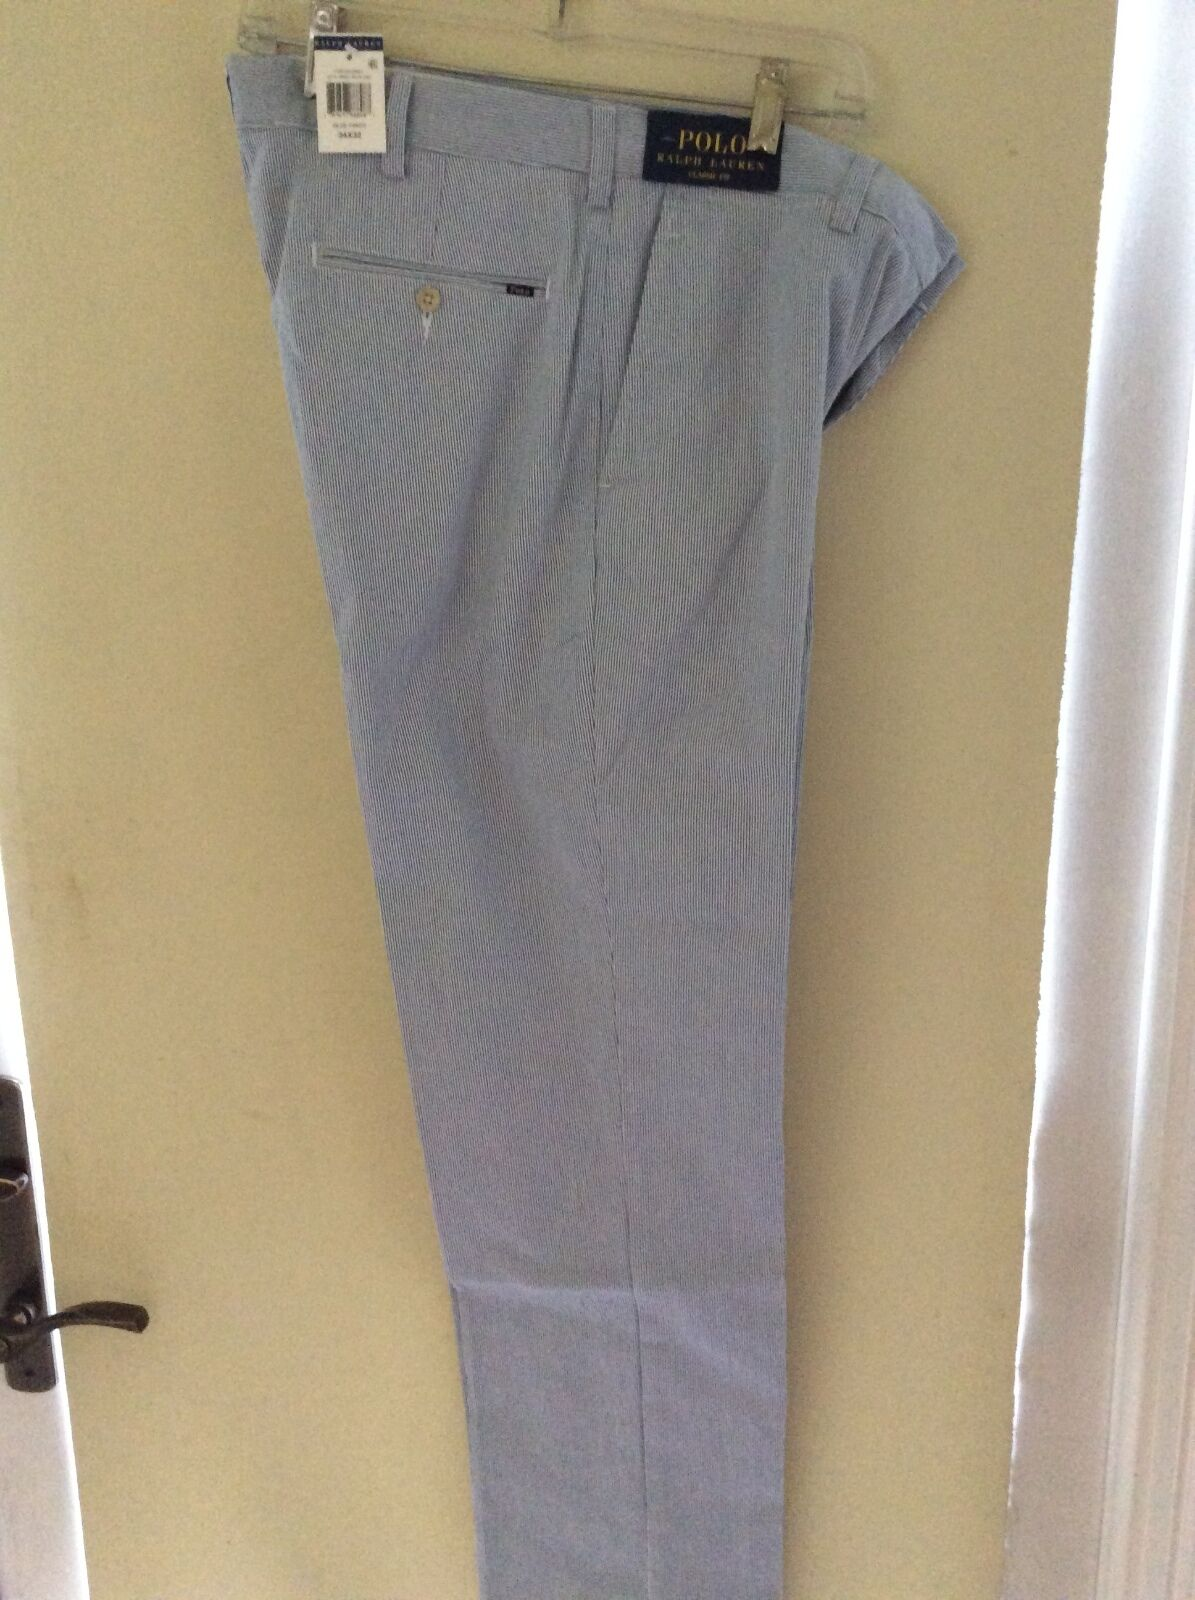 NEW RALPH LAUREN PANTS KHAKIS blueE WHITE PINSTRIPE CLASSIC FIT FLAT FRONT 36 34